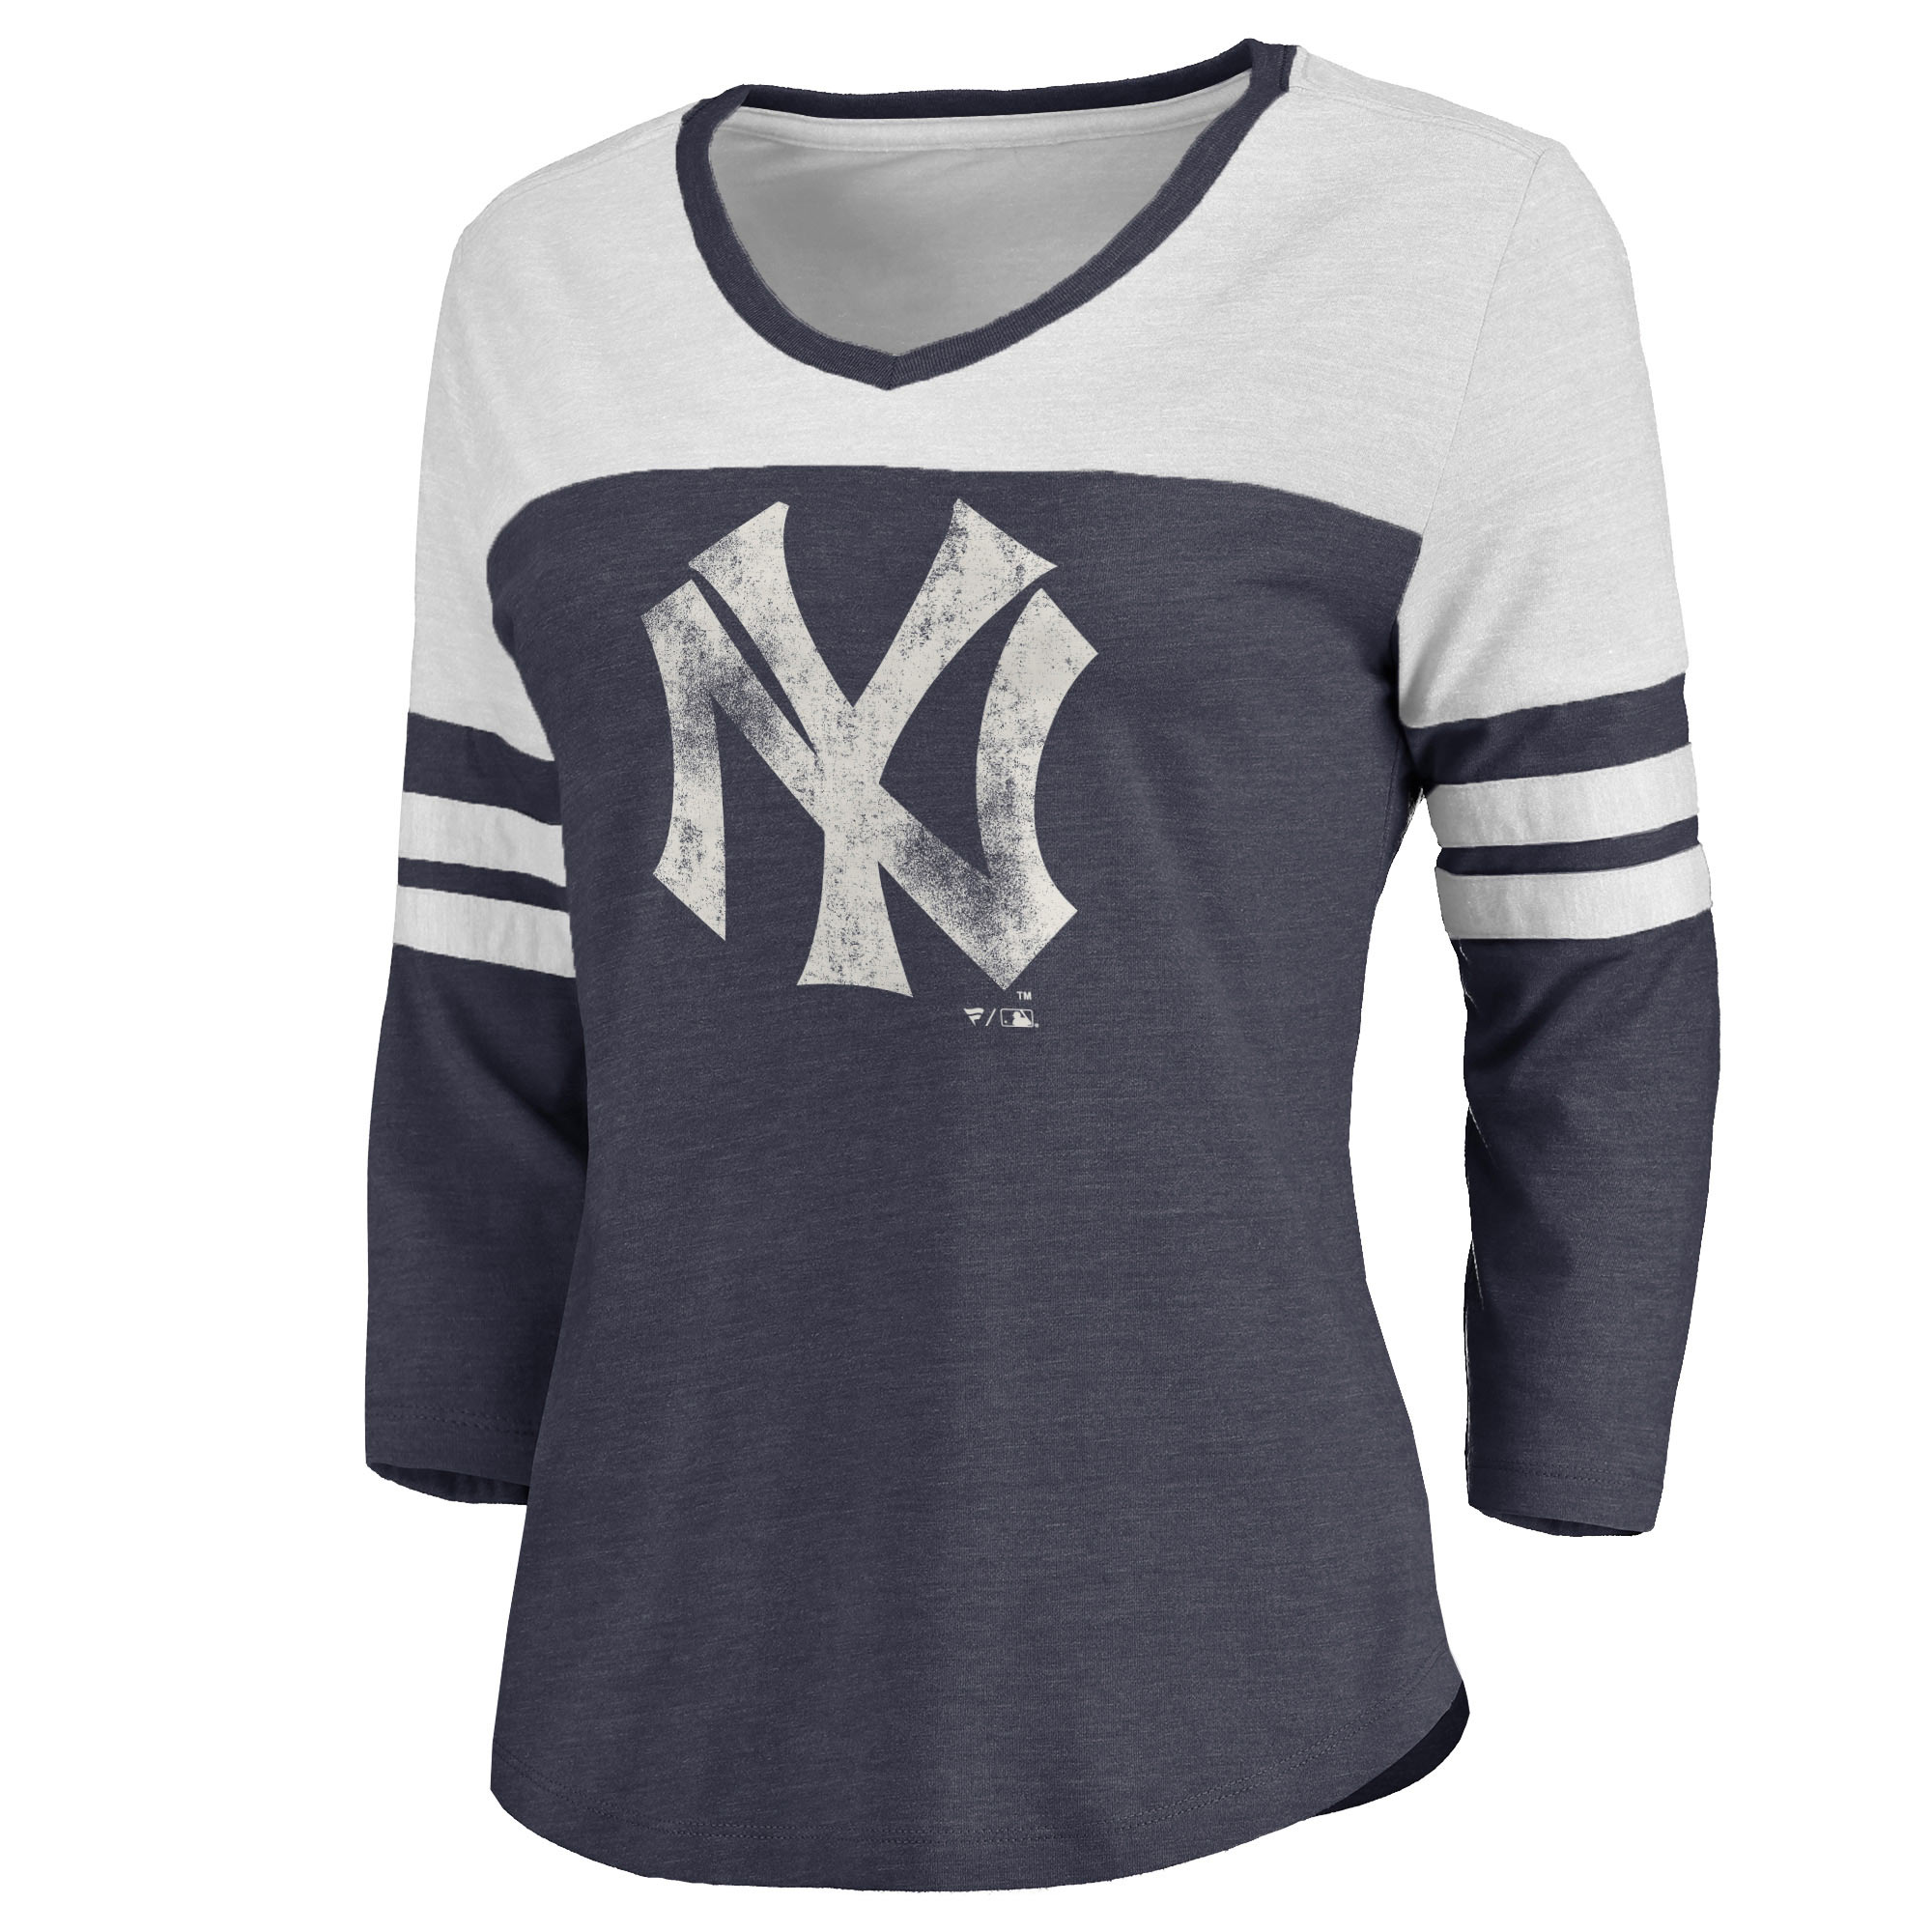 New York Yankees Women's Cooperstown Two Tone Three-Quarter Sleeve Tri-Blend T-Shirt - Navy/White